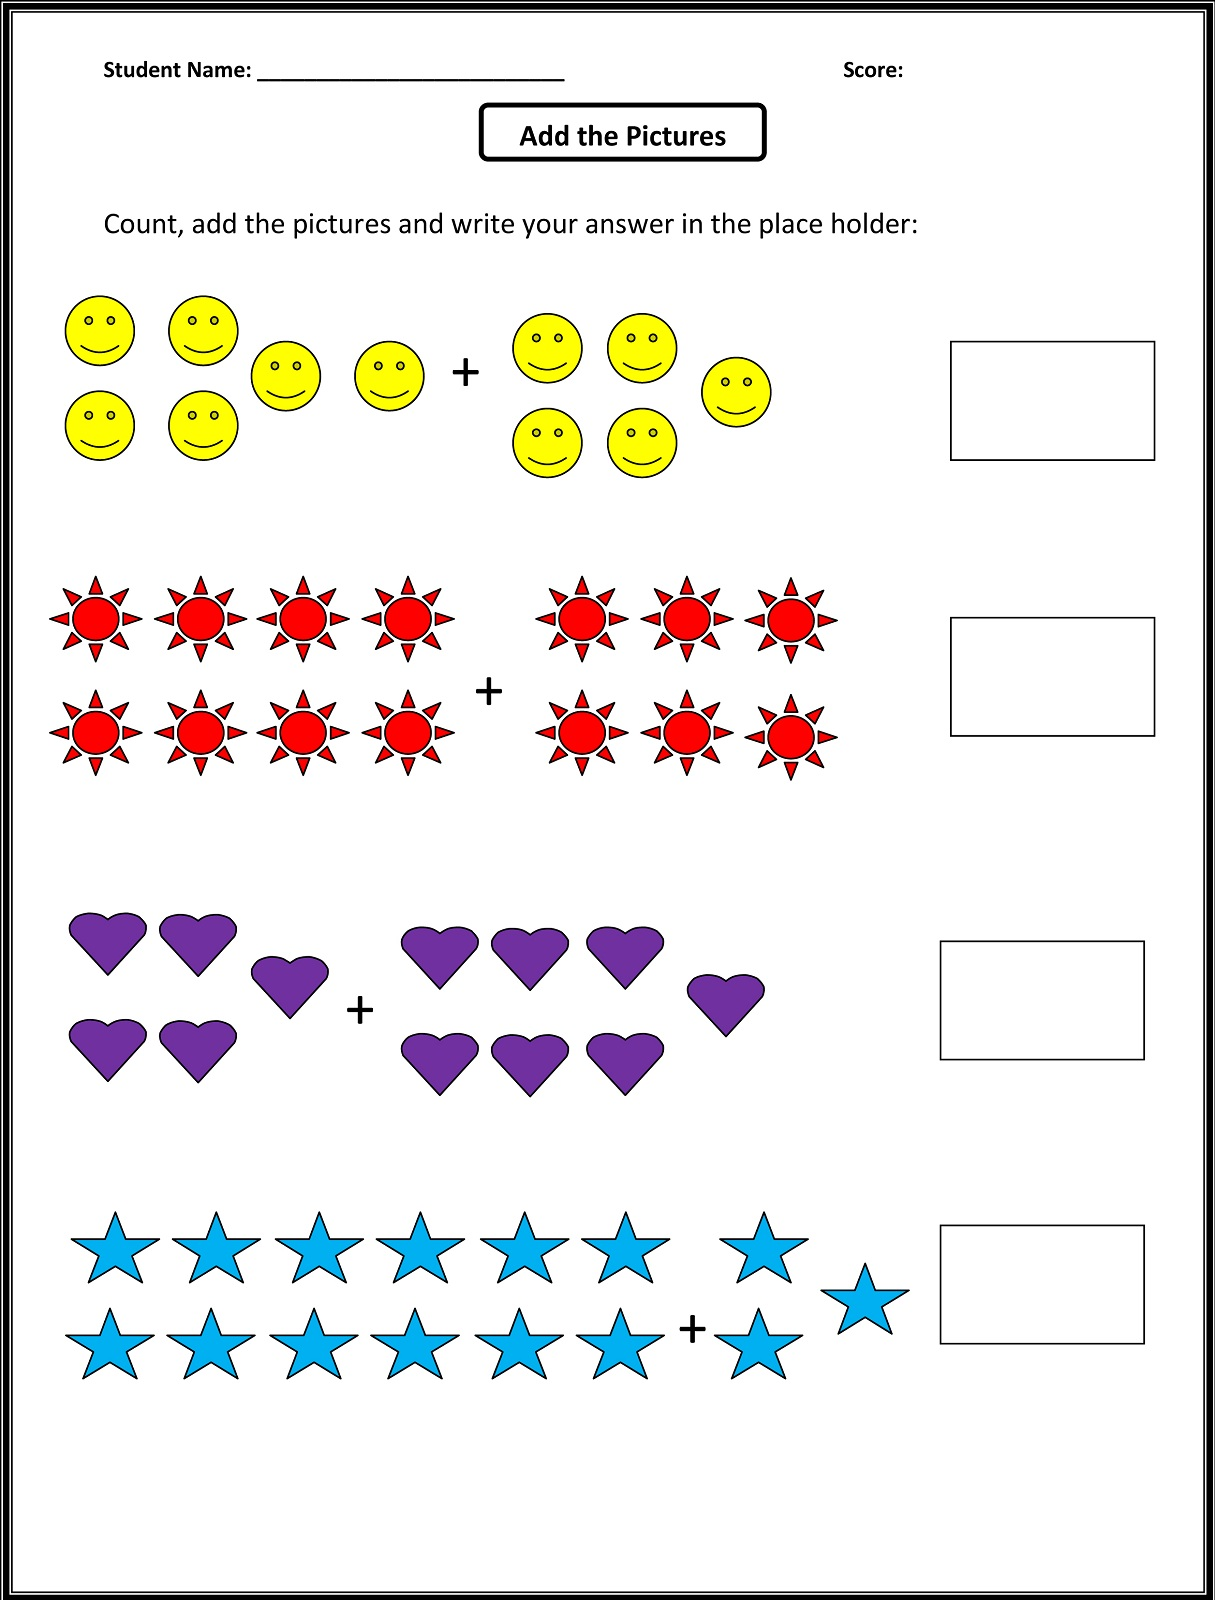 math worksheet : worksheets for 1st grade math  activity shelter : Simple Math Worksheet